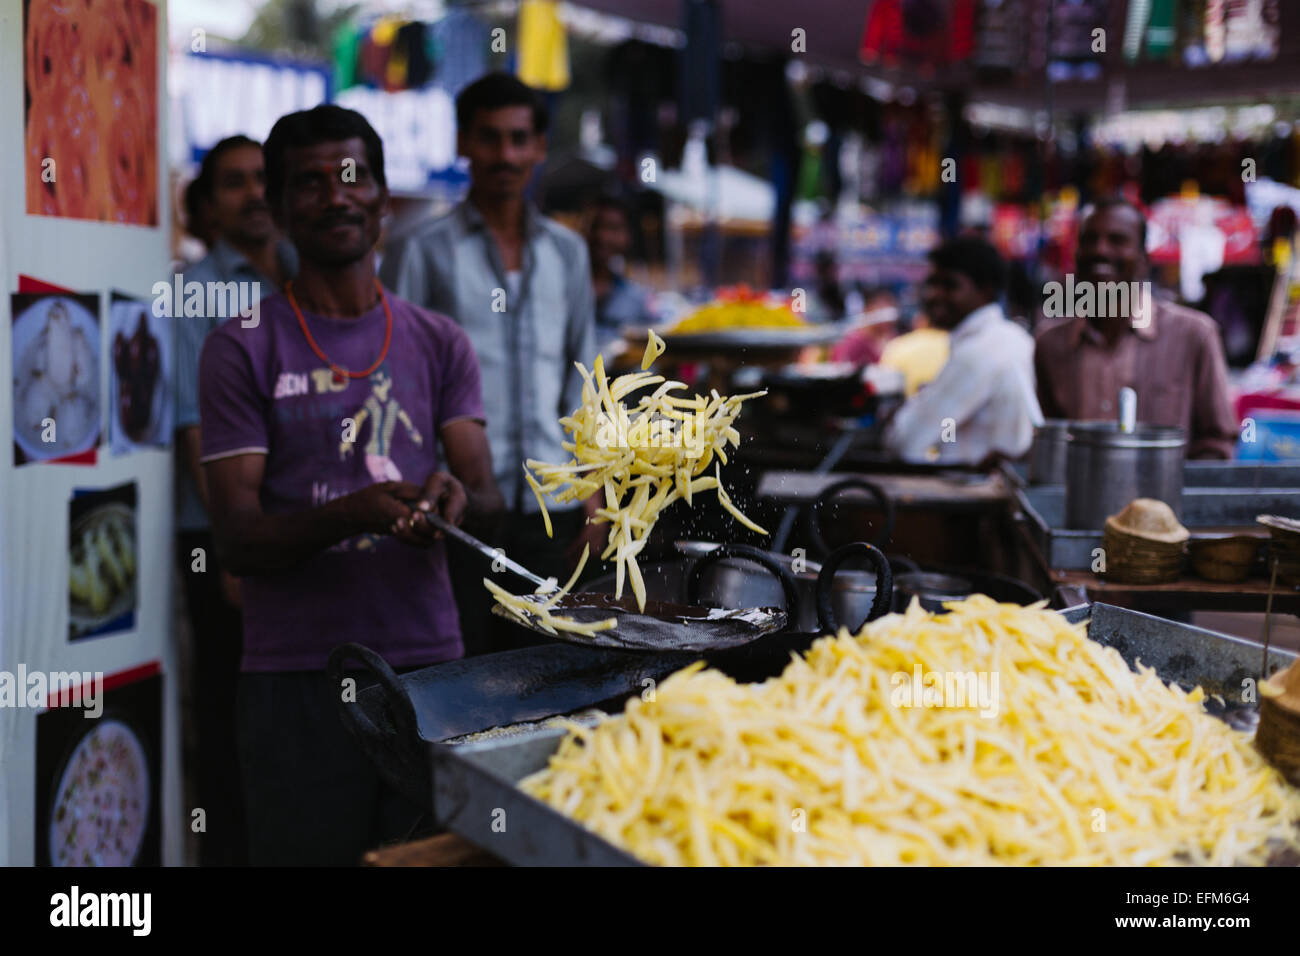 A local vendor prepares French Fries at Numaish,an industrial exhibition that is held annually in Hyderabad,India - Stock Image